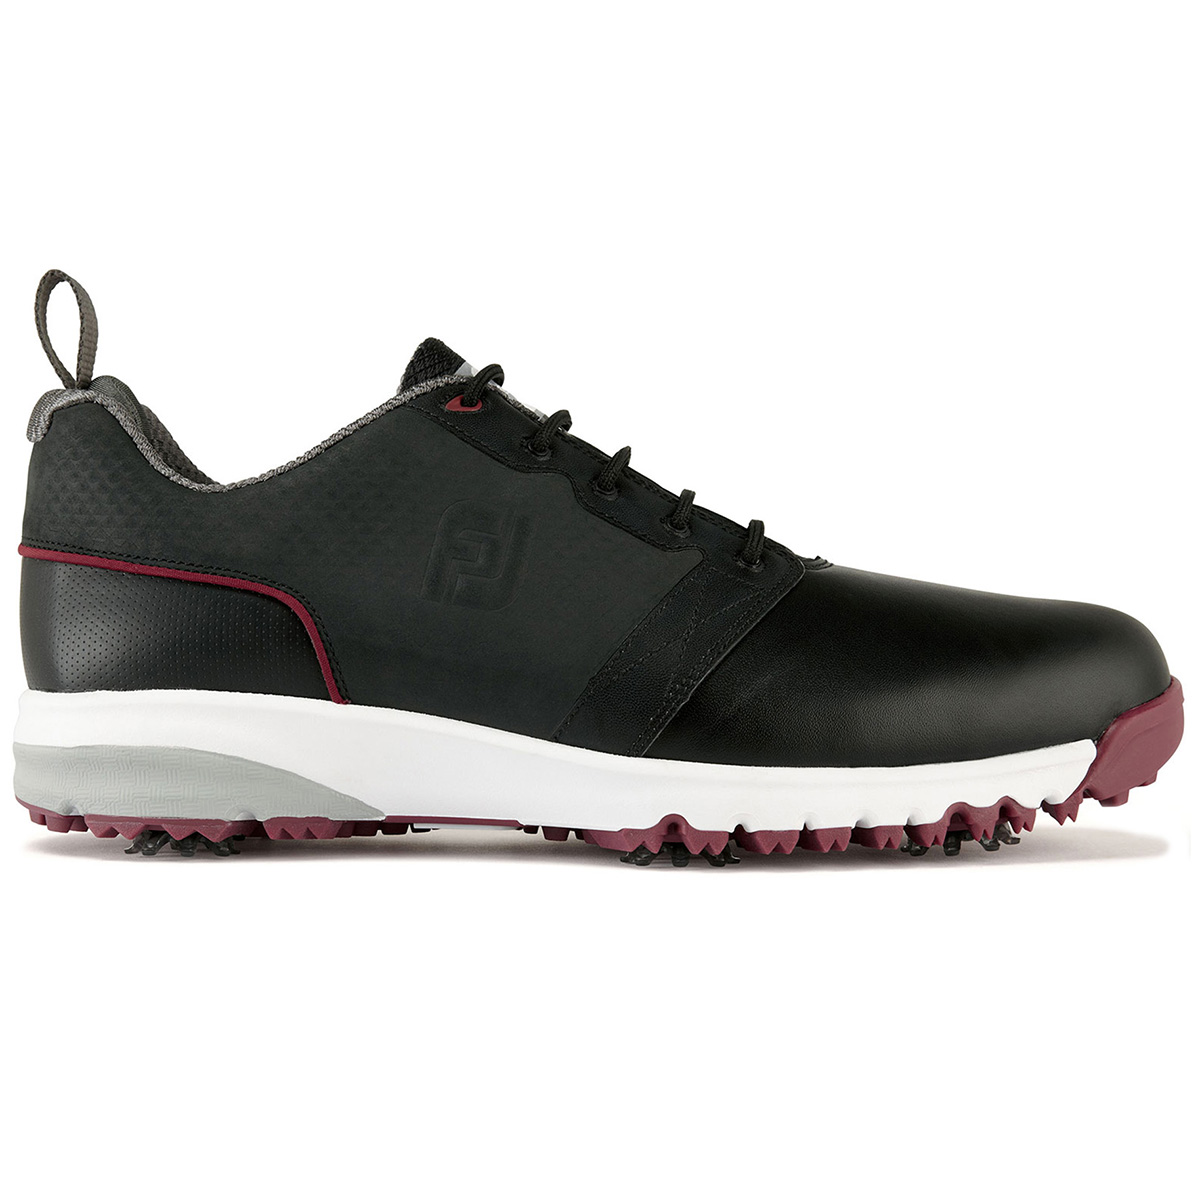 2c401bd550c3 FootJoy Contour Fit Shoes from american golf